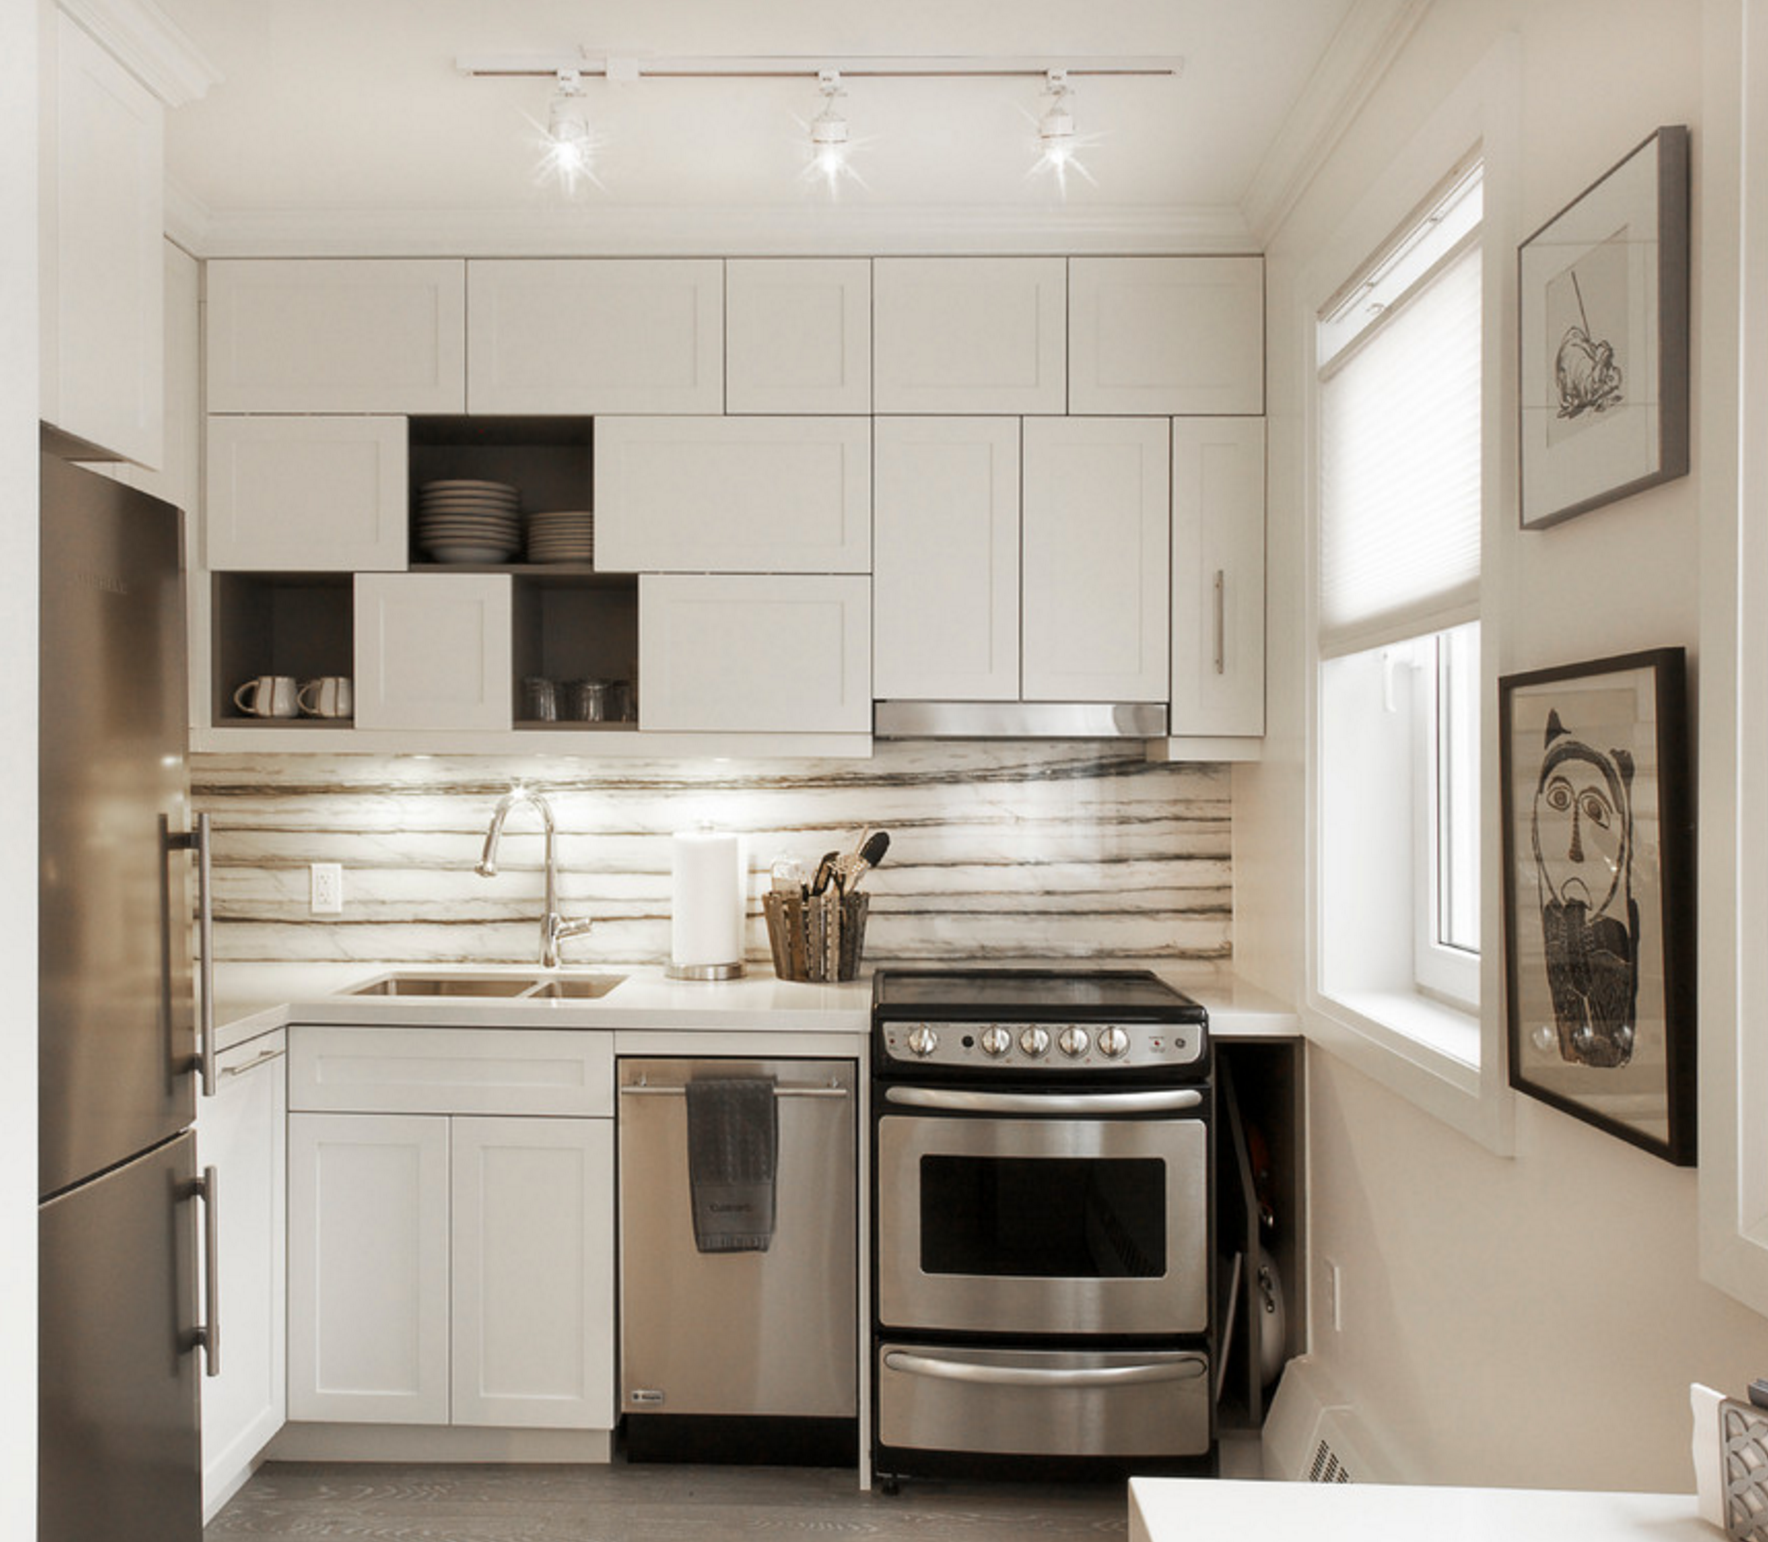 The Best Way To Make Your Kitchen Ceiling Appear Higher Is By Bringing Your Cabinets All The Way Up To Tiny House Kitchen Contemporary Kitchen Kitchen Ceiling